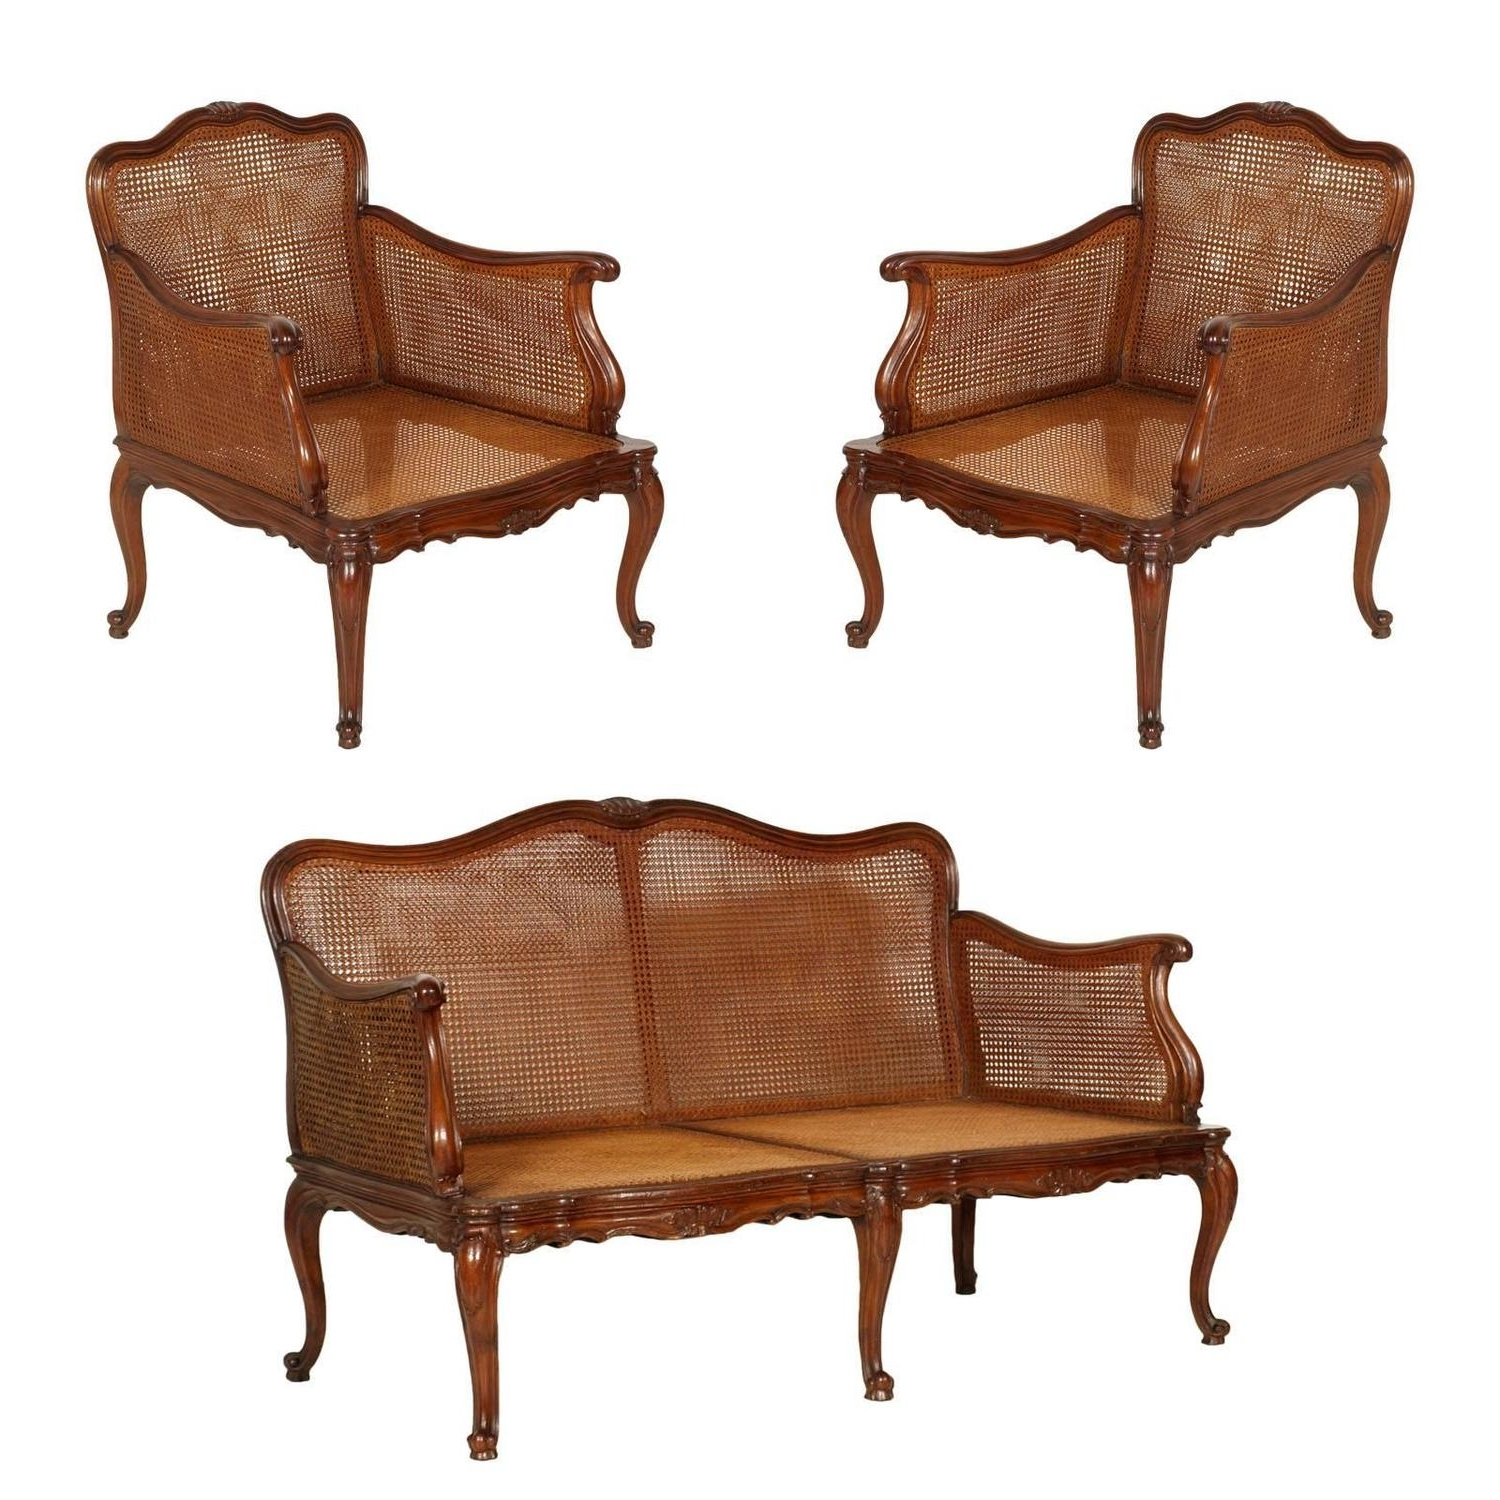 Sofa Arm Chairs Regarding 2019 19Th Century Venice Cadorin Sofa And Pair Of Armchairs Vienna (View 13 of 20)